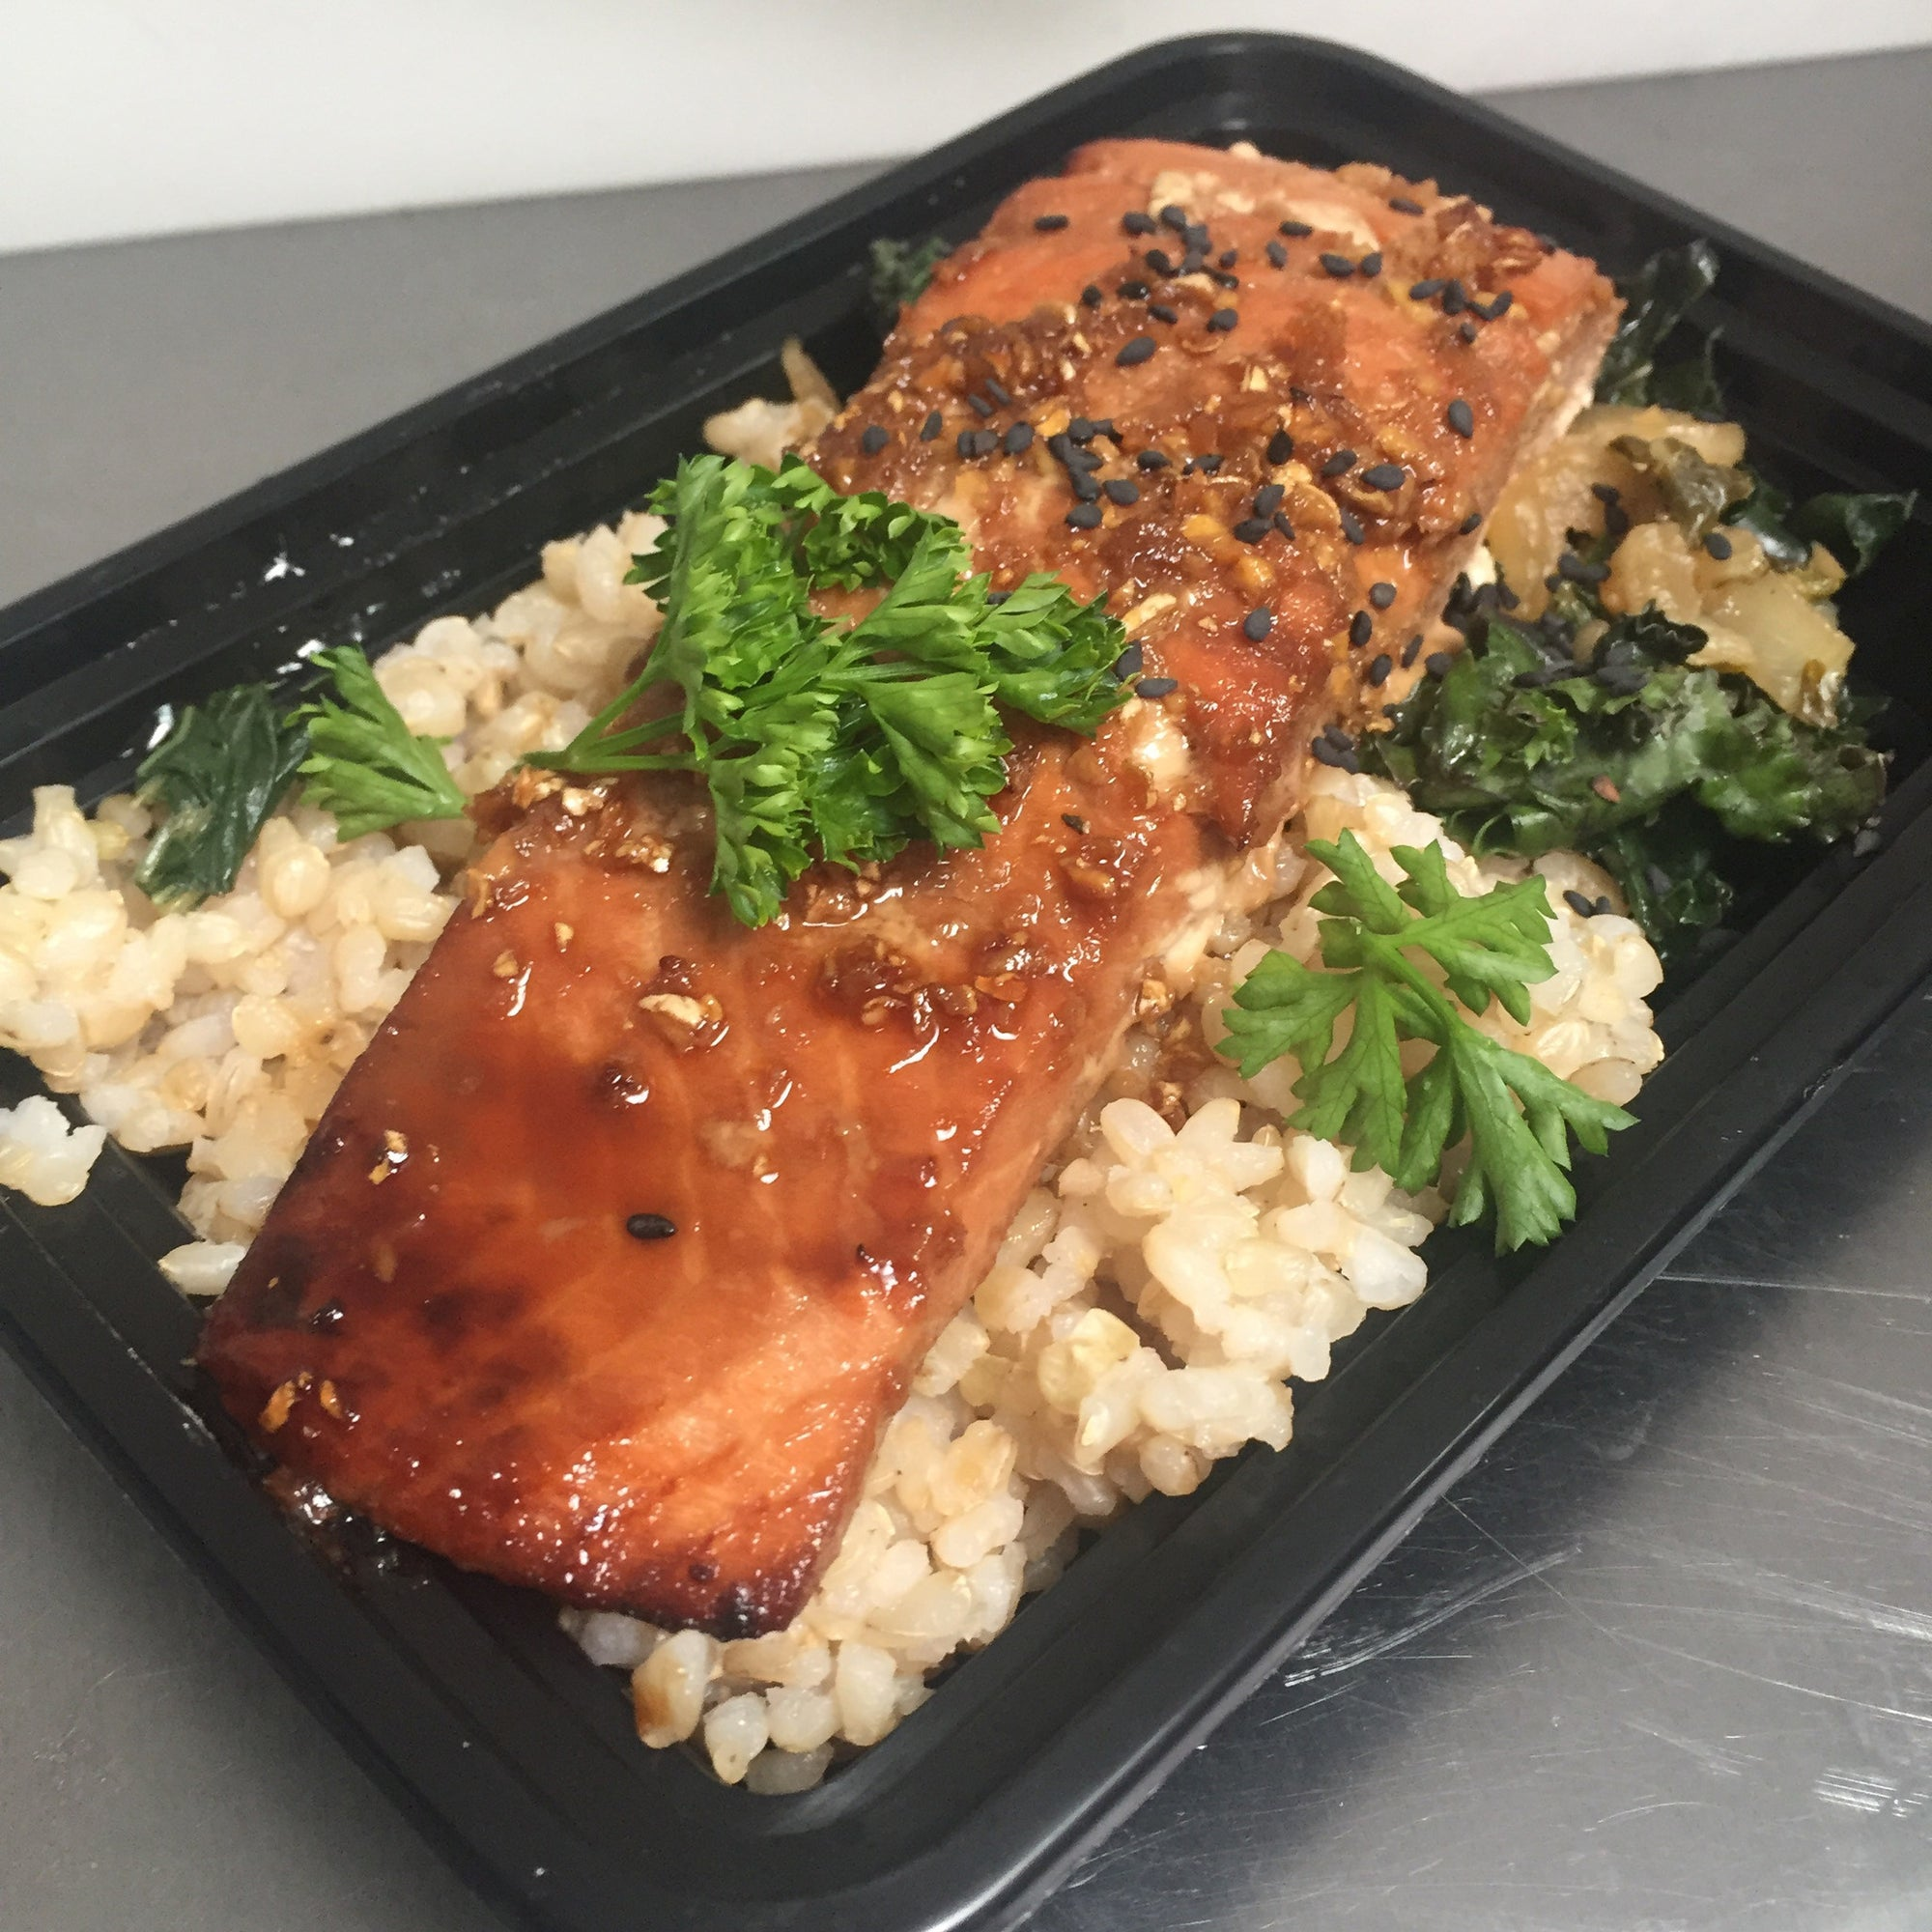 Teriyaki Glazed Salmon w/ Brown Rice & Greens